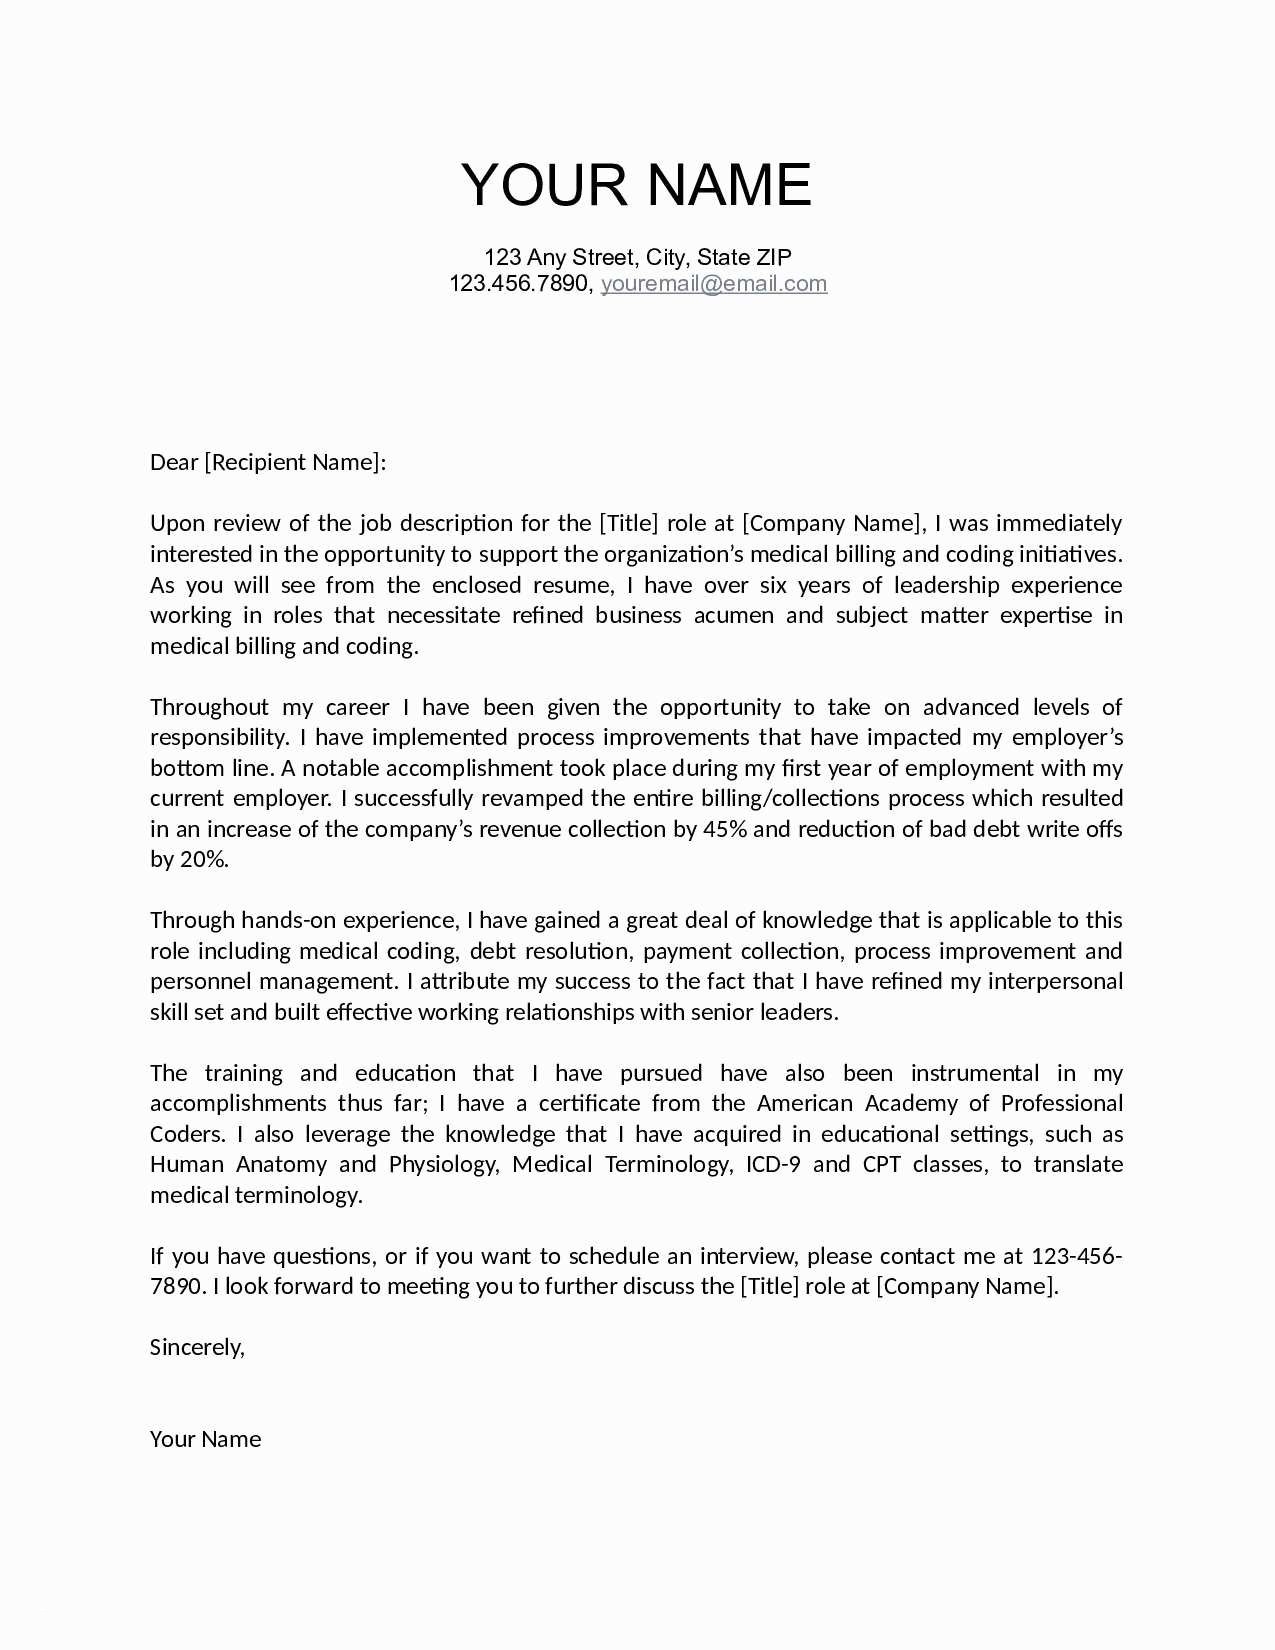 Impressive Cover Letter Template - Resume and Cover Letters Templates Awesome Job Fer Letter Template